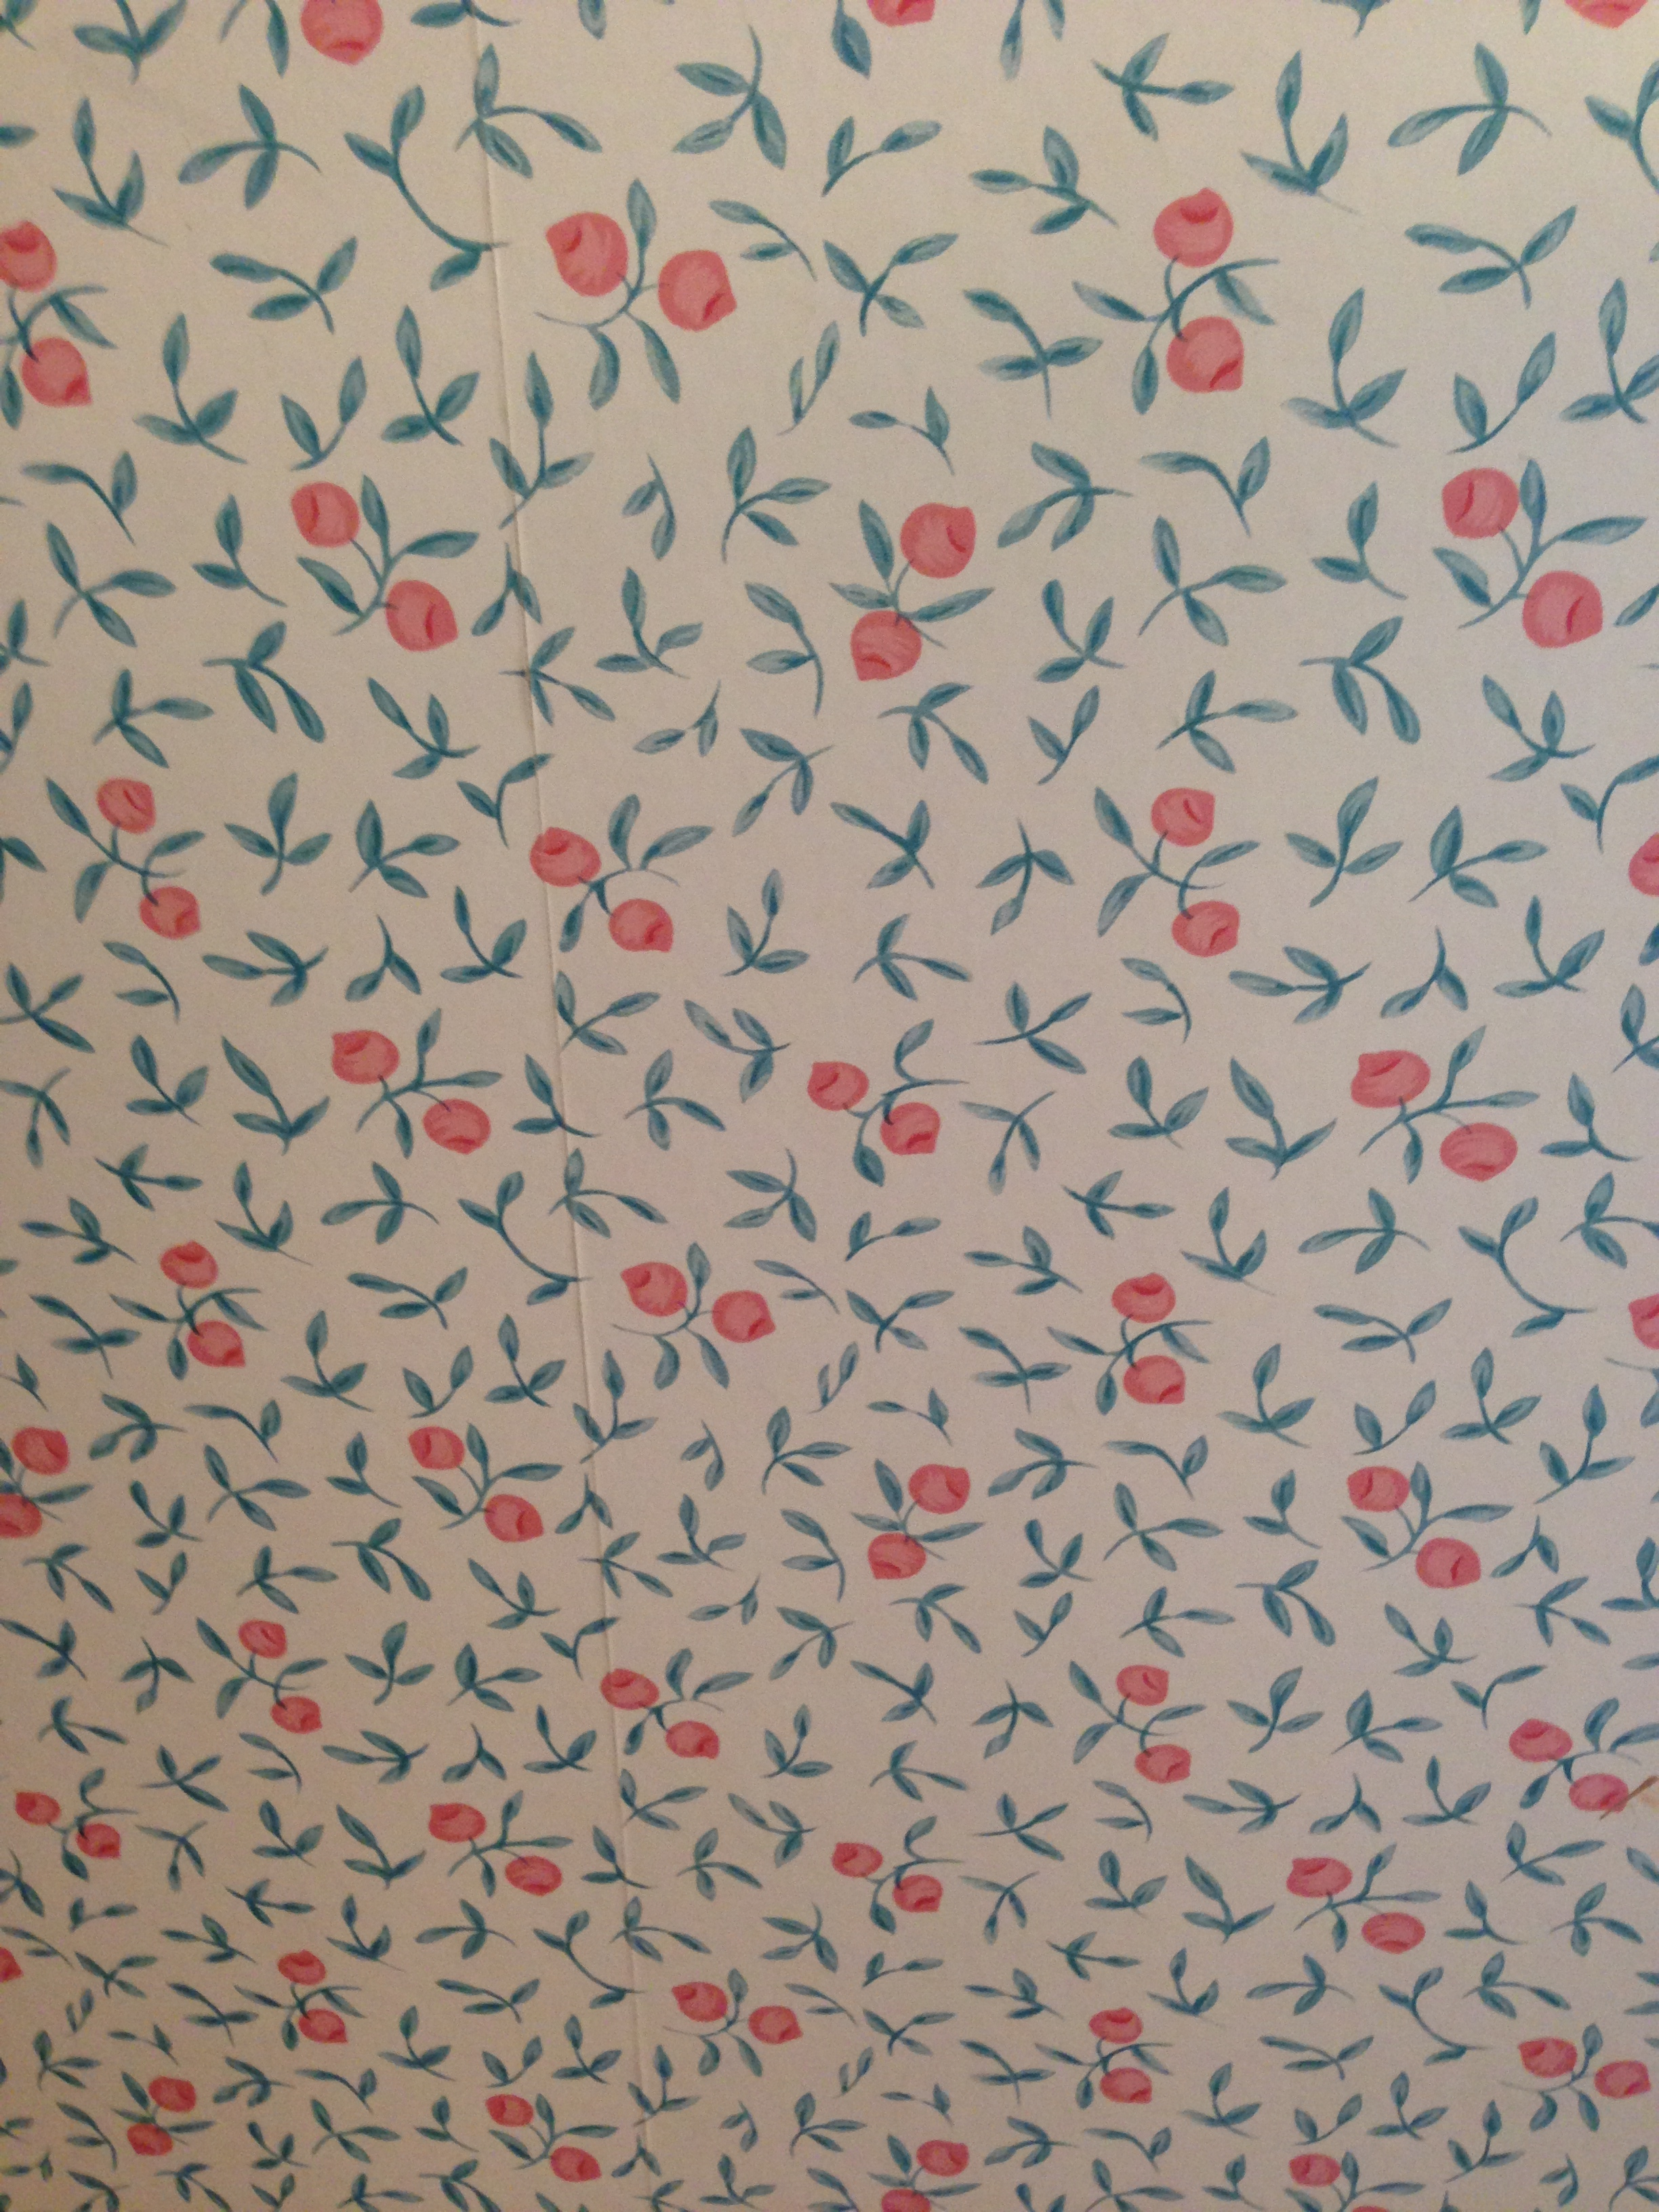 oh my this wallpaper is hideous!